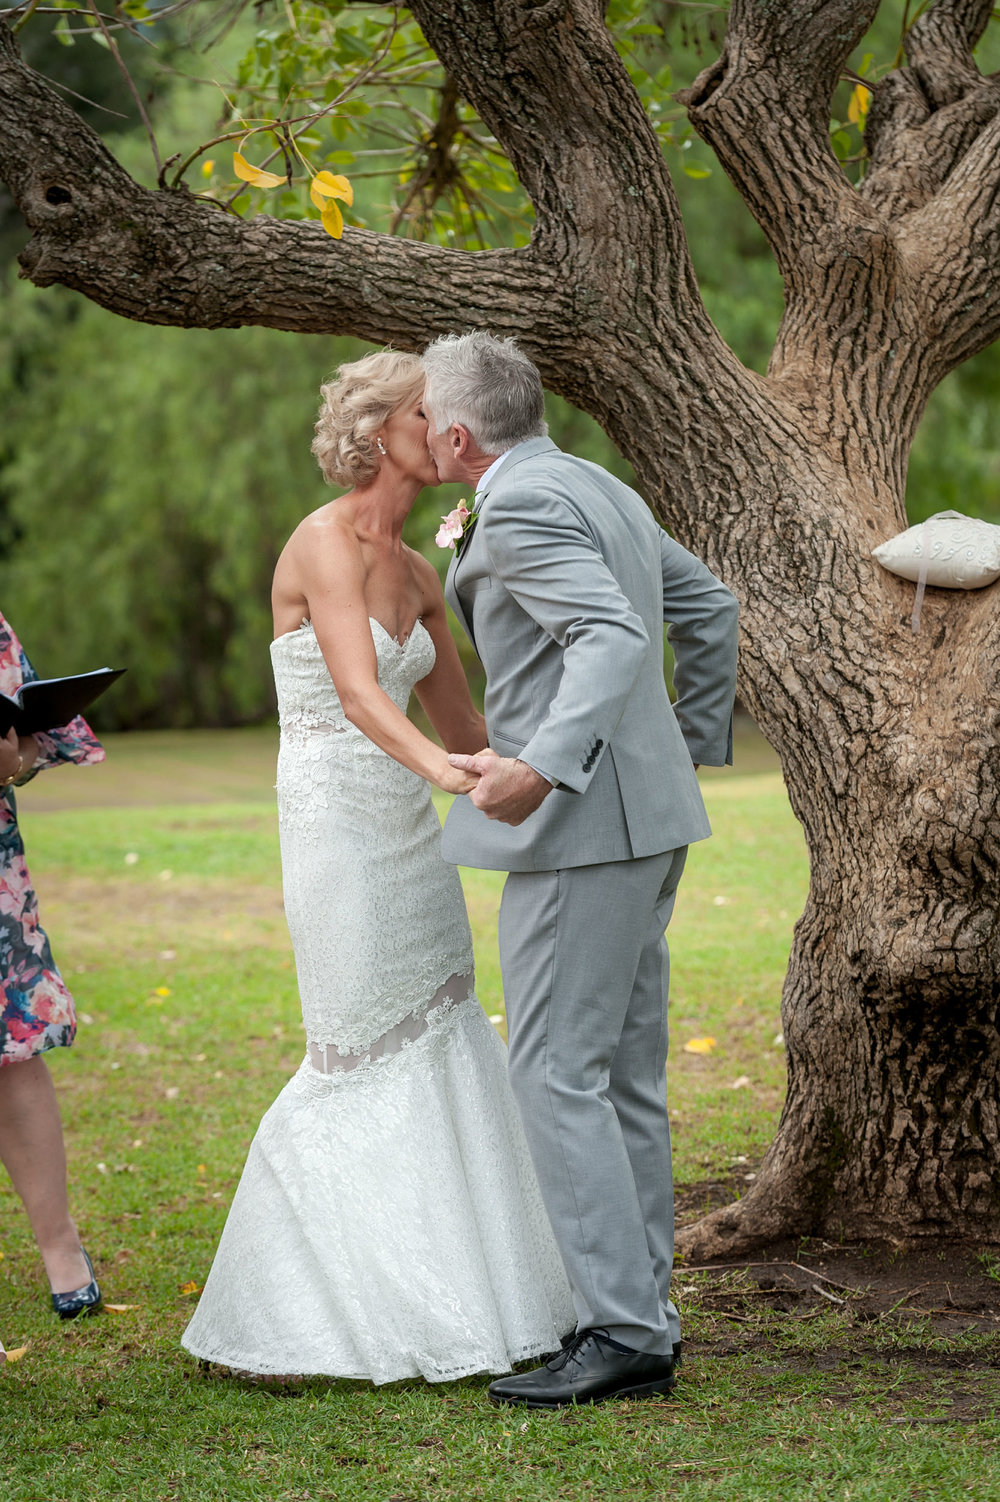 cnj-photography_Dave-&-Kellie29.jpg